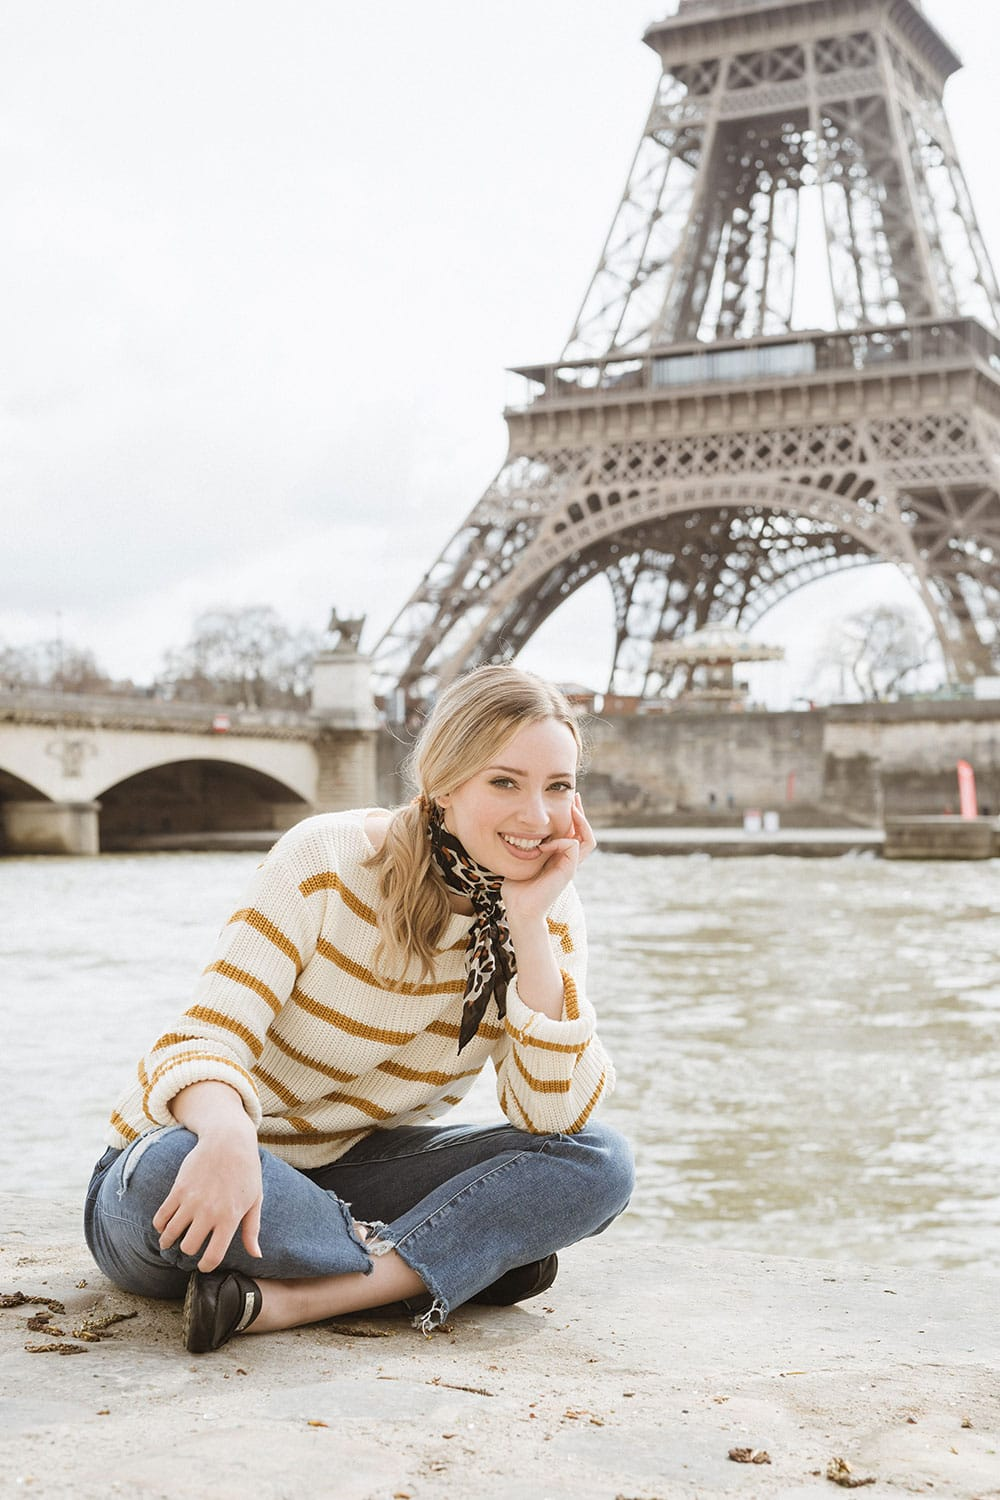 Sitting in front of the River Seine with the Eiffel Tower in the background